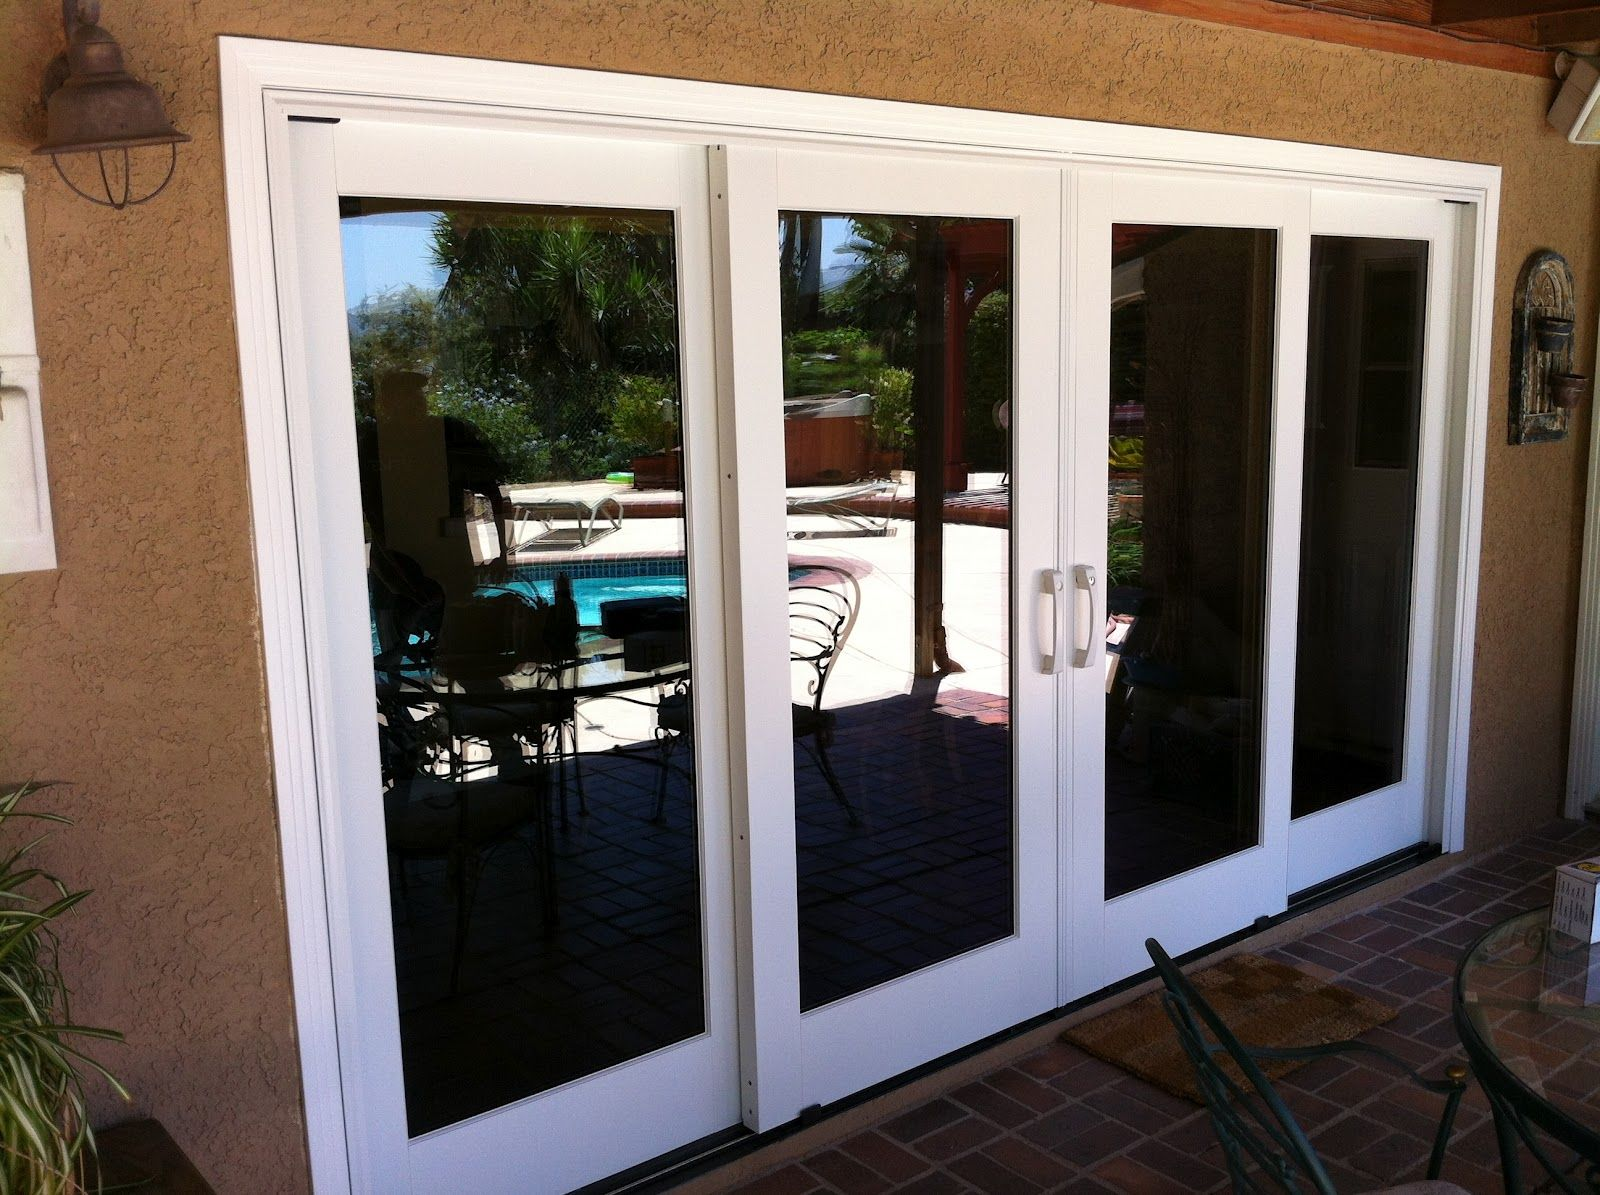 Bon 12 Foot Sliding Glass Patio Doors | Glass Doors 12 Foot Sliding Glass Doors  Http 12 Foot Sliding Glass .